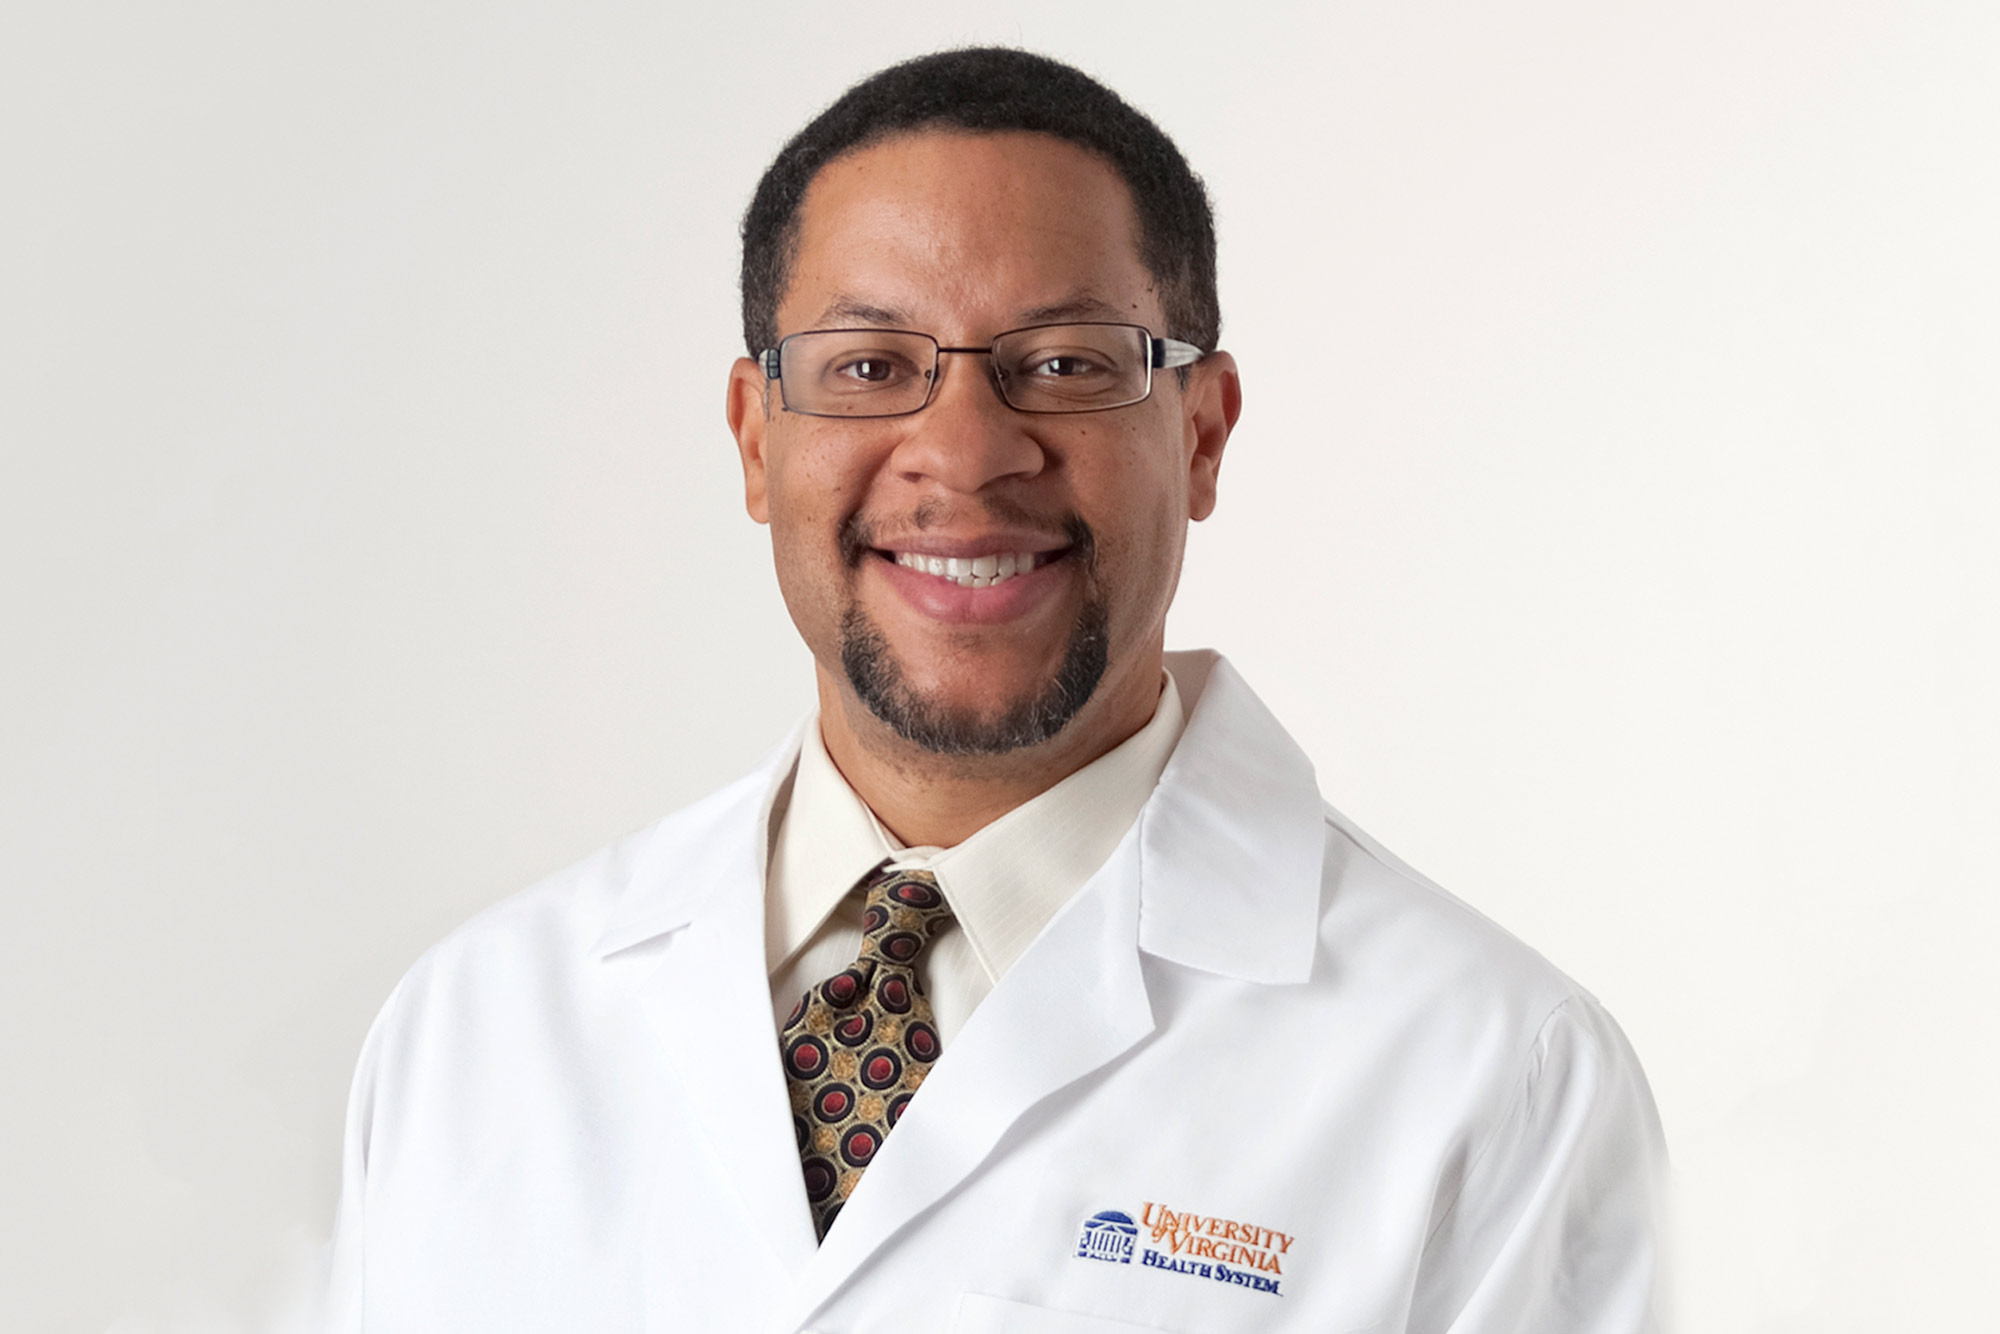 Dr. Michael D. Williams will lead the two-day symposium.